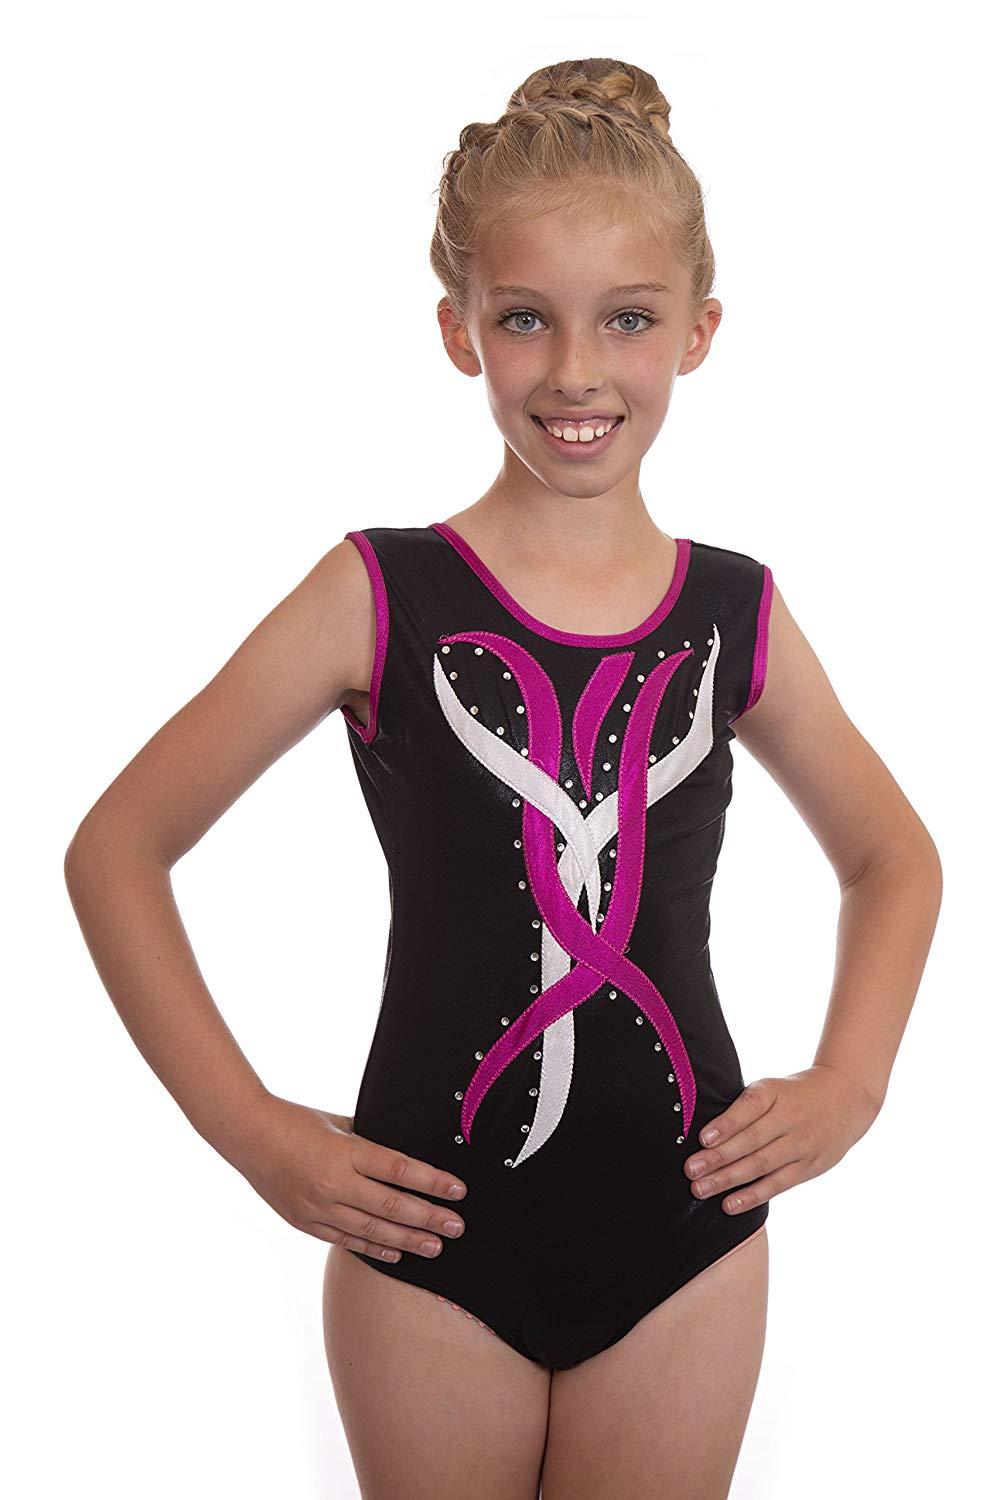 20b74a8ca427e7 Get Quotations · Vincenza Dancewear Girls Sleeveless Gymnastic Leotard  Black with Pink and Silver Flame